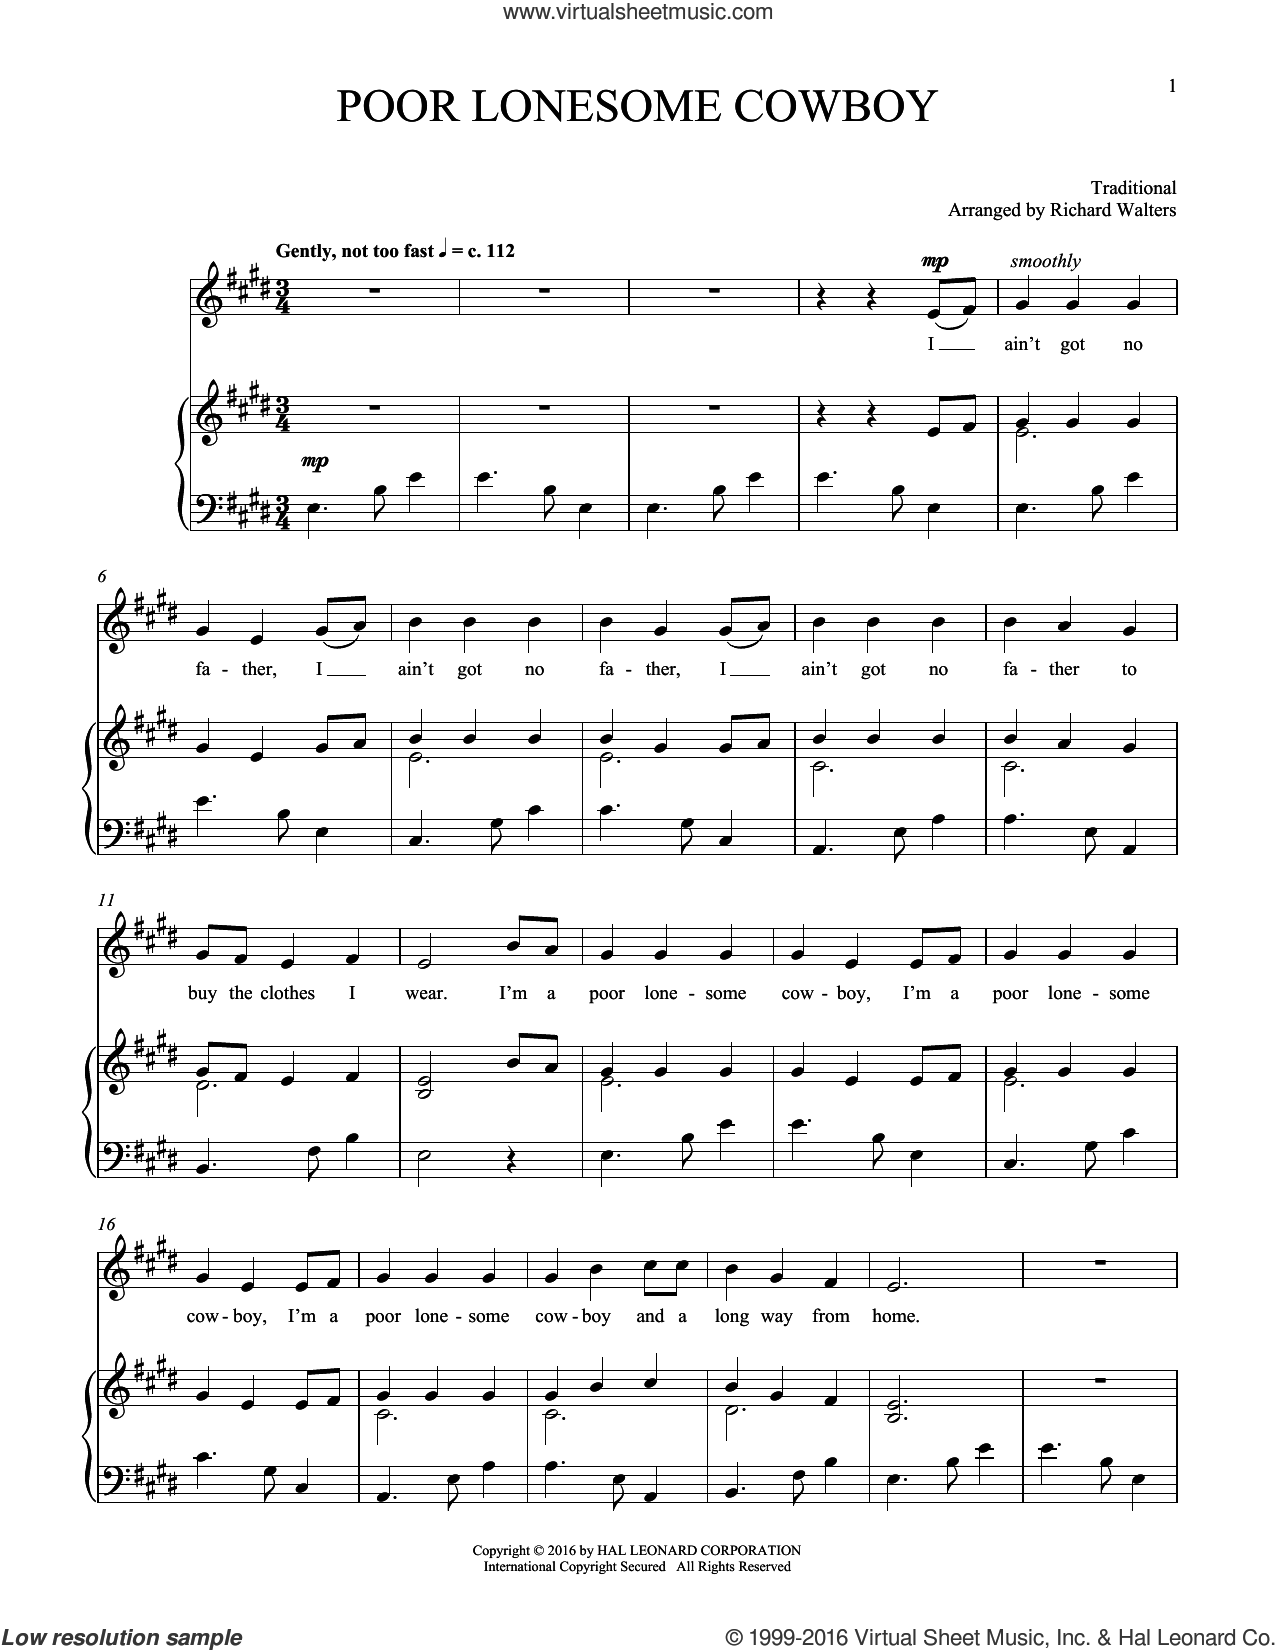 Poor Lonesome Cowboy sheet music for voice and piano. Score Image Preview.